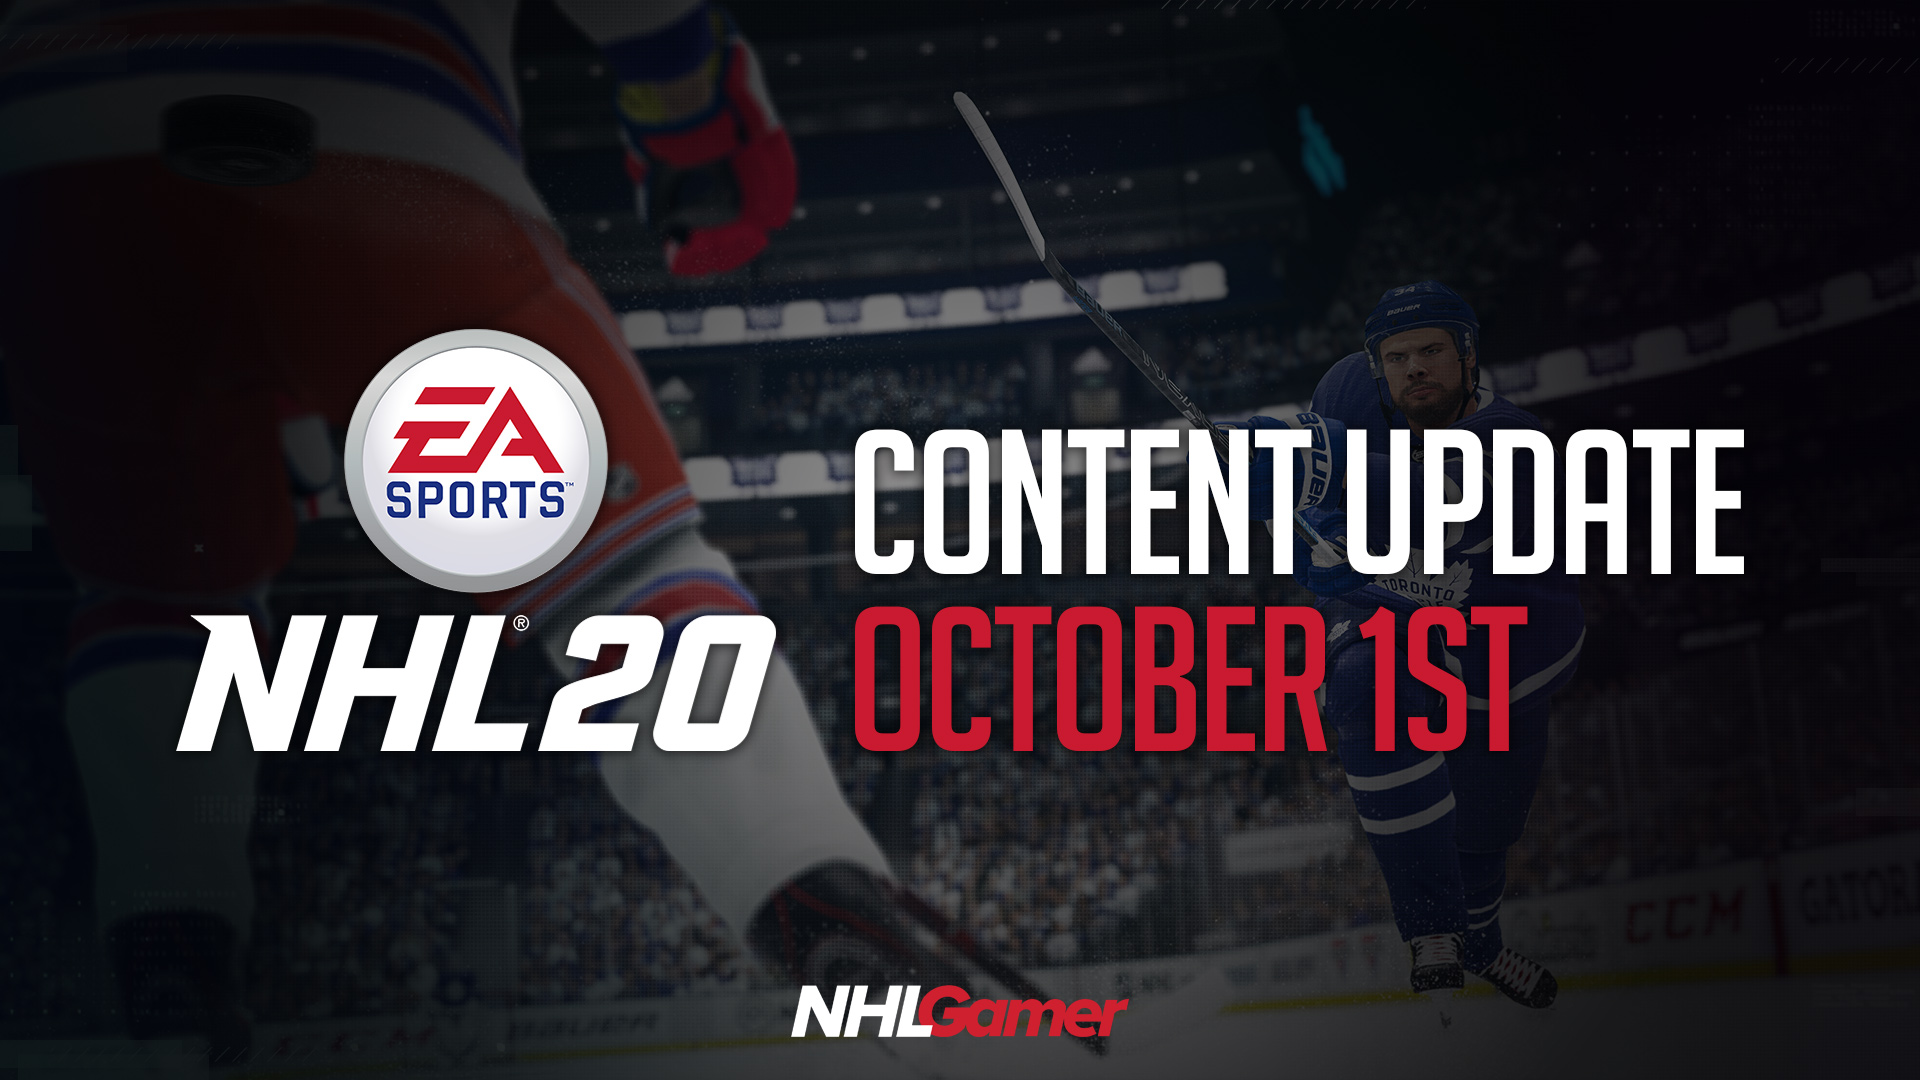 NHL_20_Content_Update_OCT1.jpg